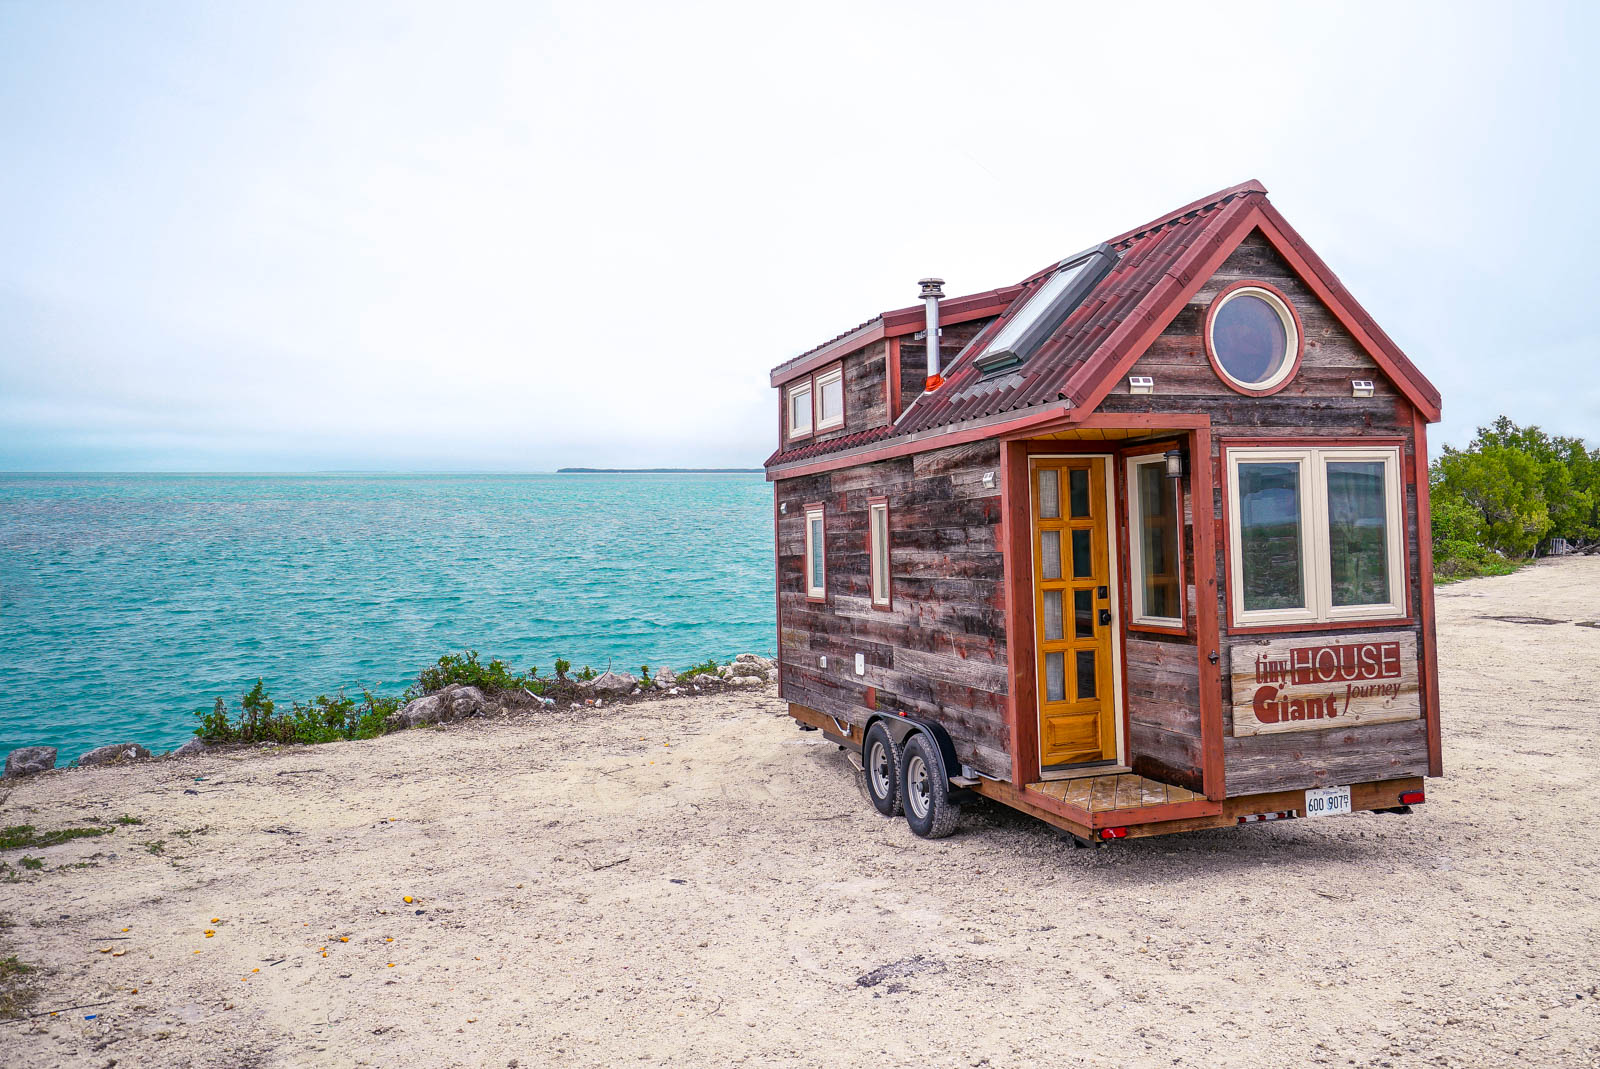 Florida Keys Tortuga Titanic Lobster Warrior Tiny House Giant